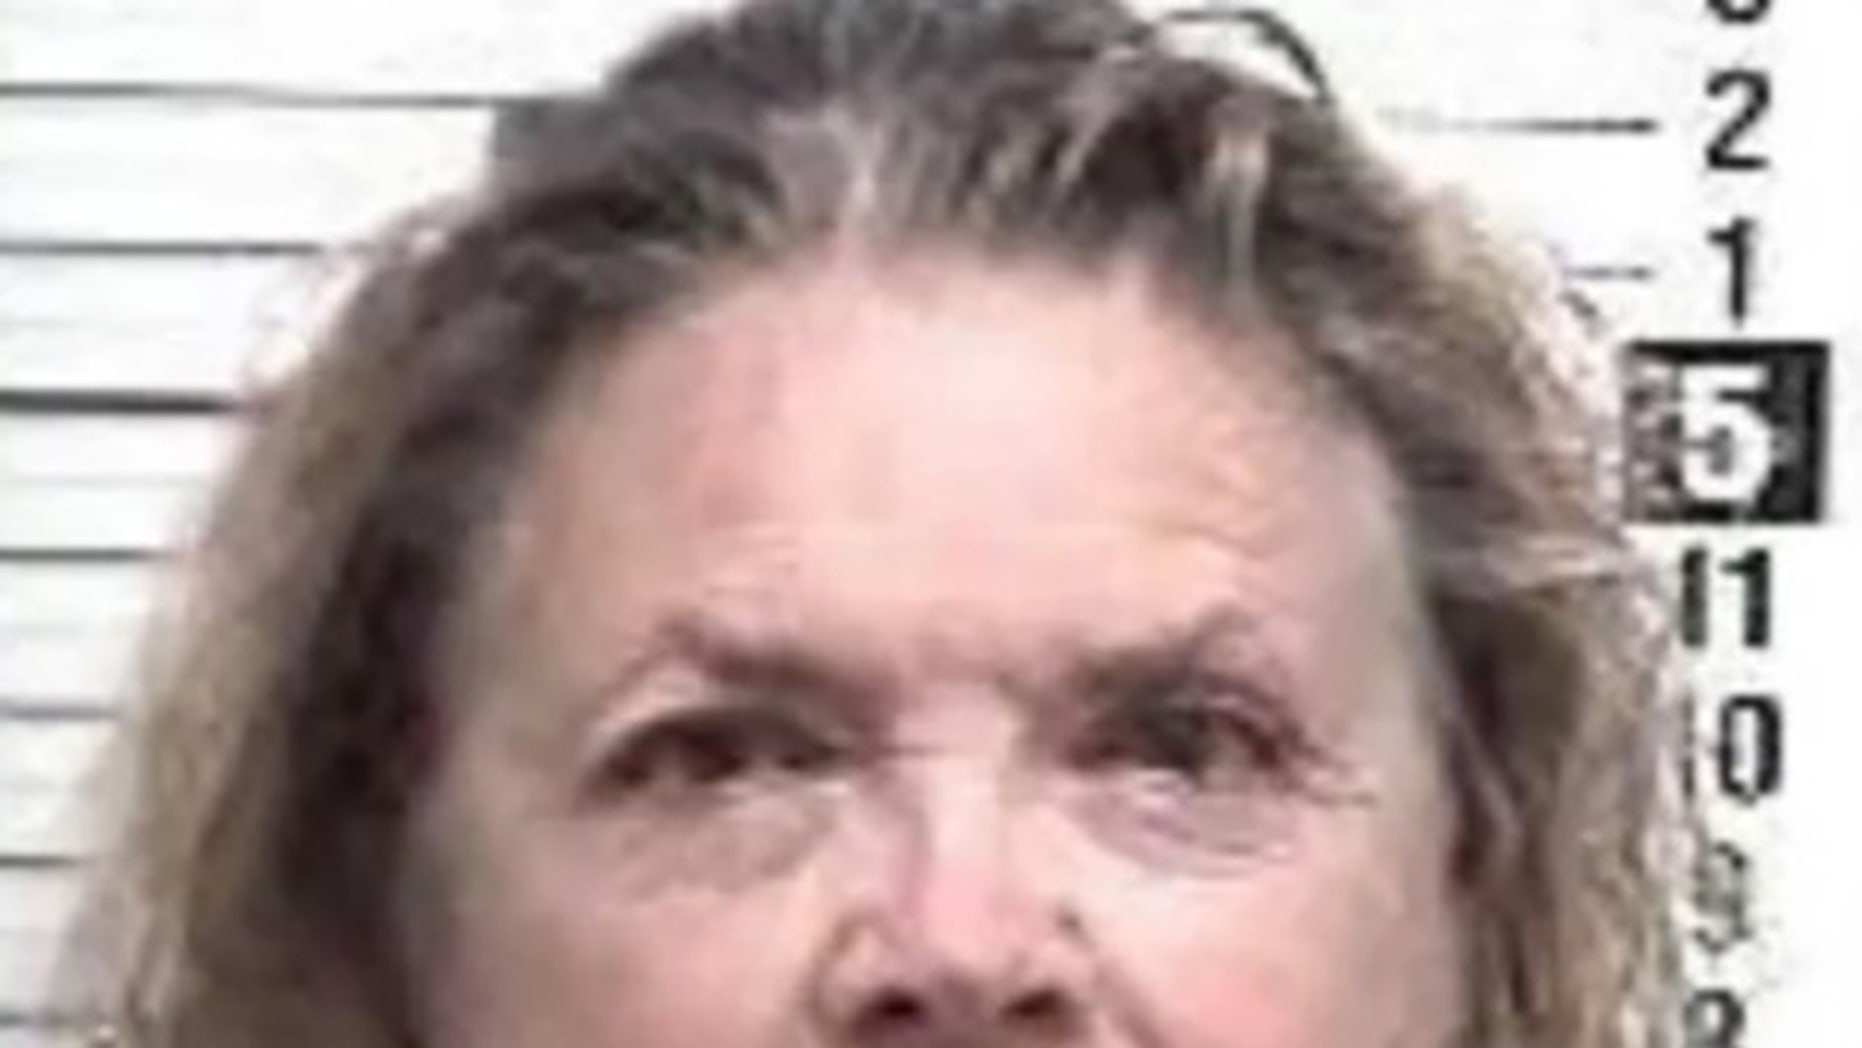 Priscilla Ann Ethridge, 66, was arrested Saturday in Panama City Beach, Fla., after allegedly firing a gun at her son following an argument in which she wanted the last word, according to a police report.